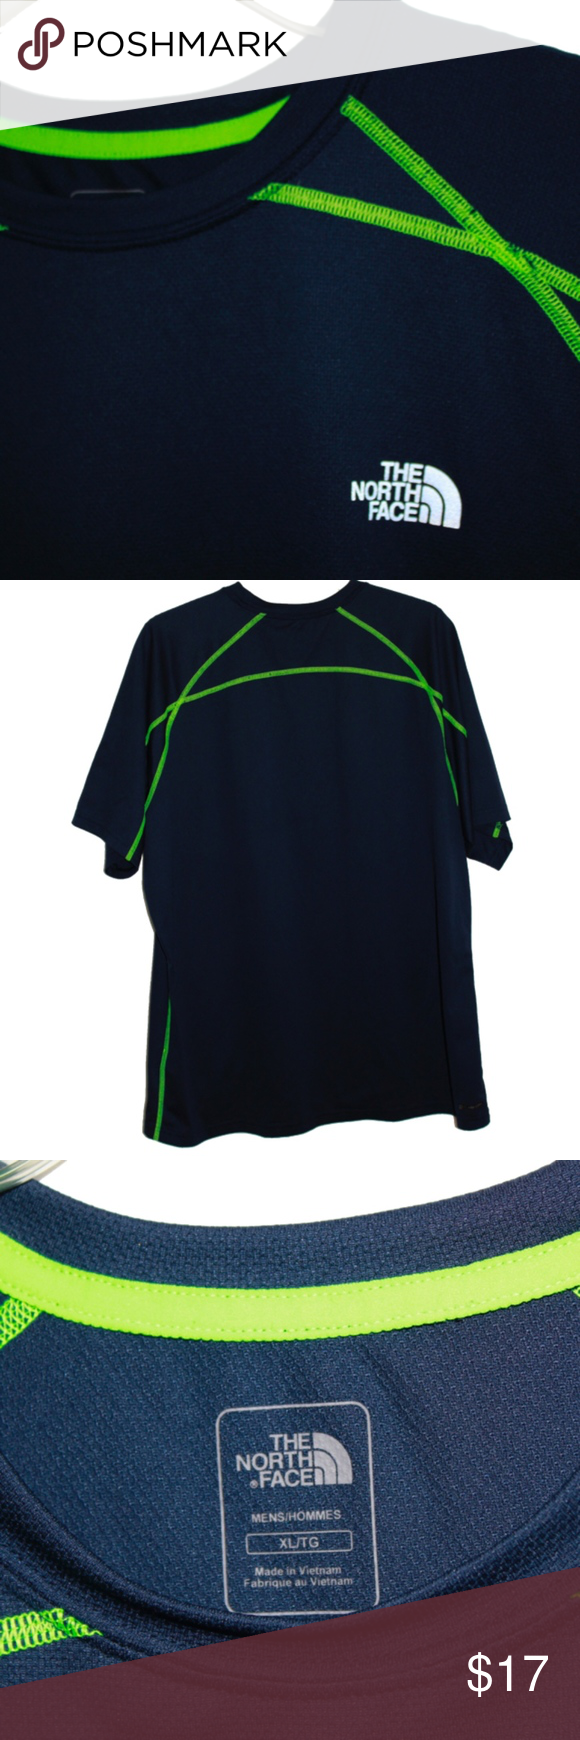 57daa6667 The North Face Navy Blue and Neon Green T-Shirt XL The North Face ...